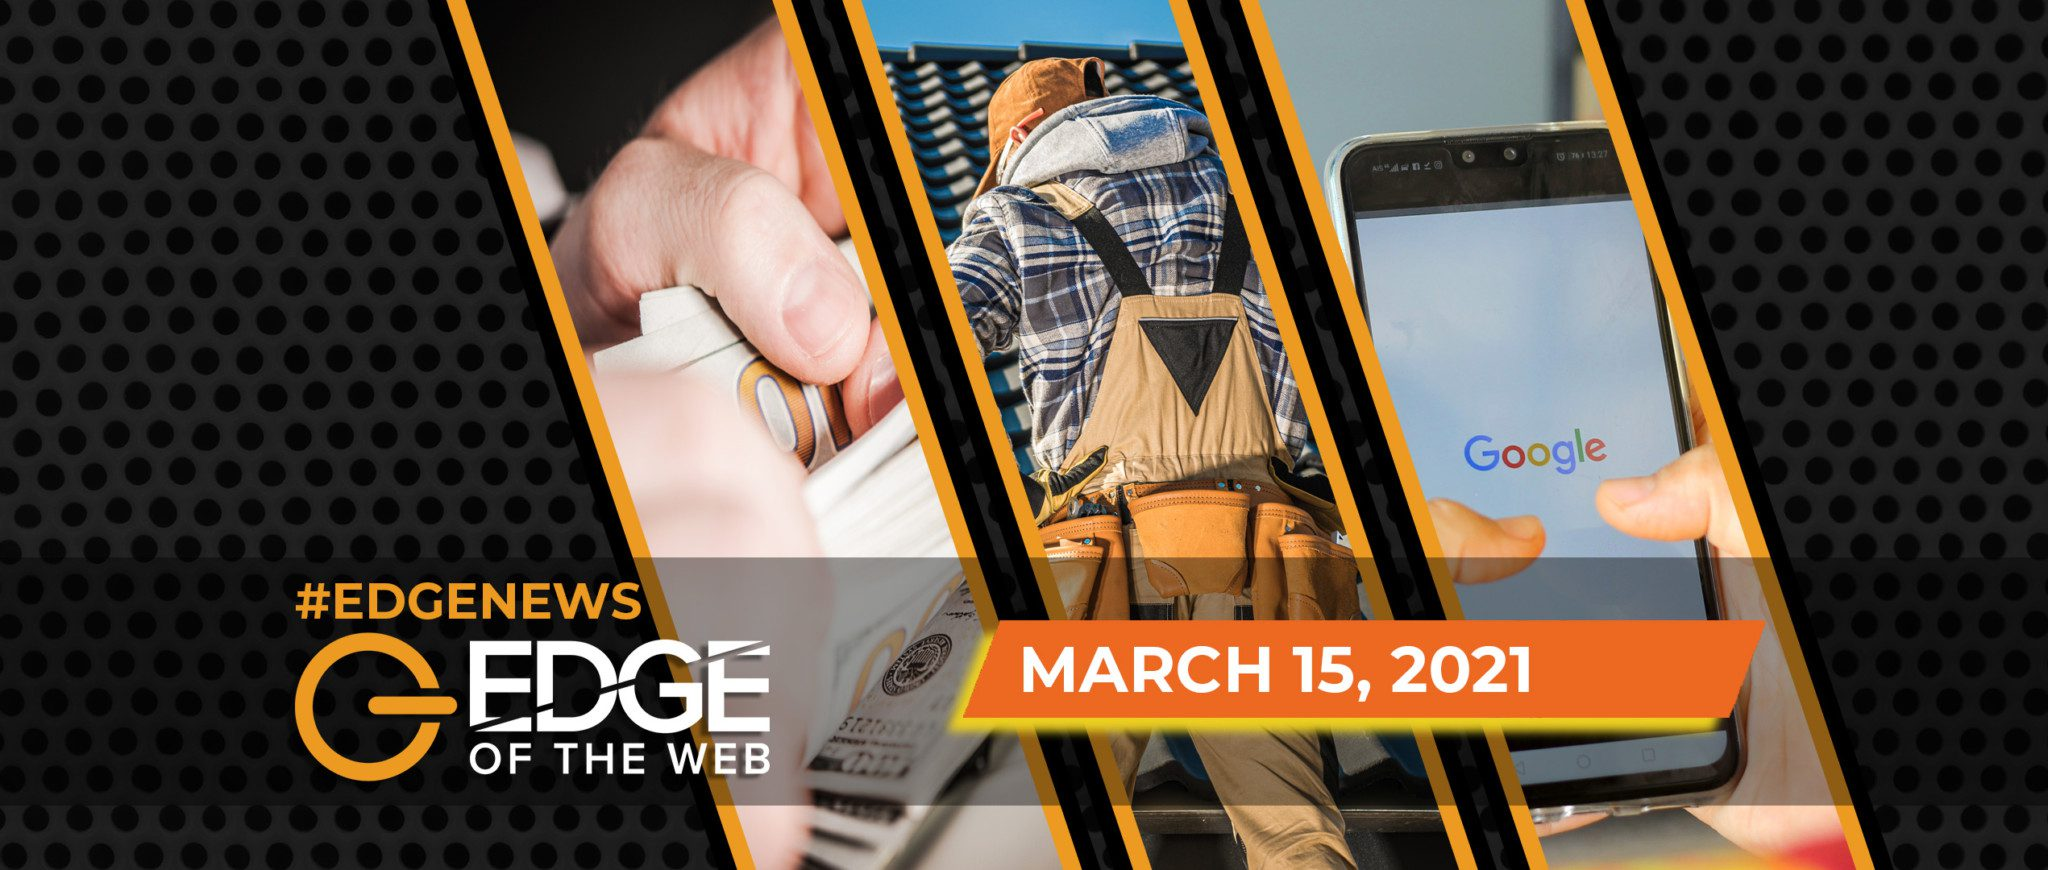 EDGE News Featured Image